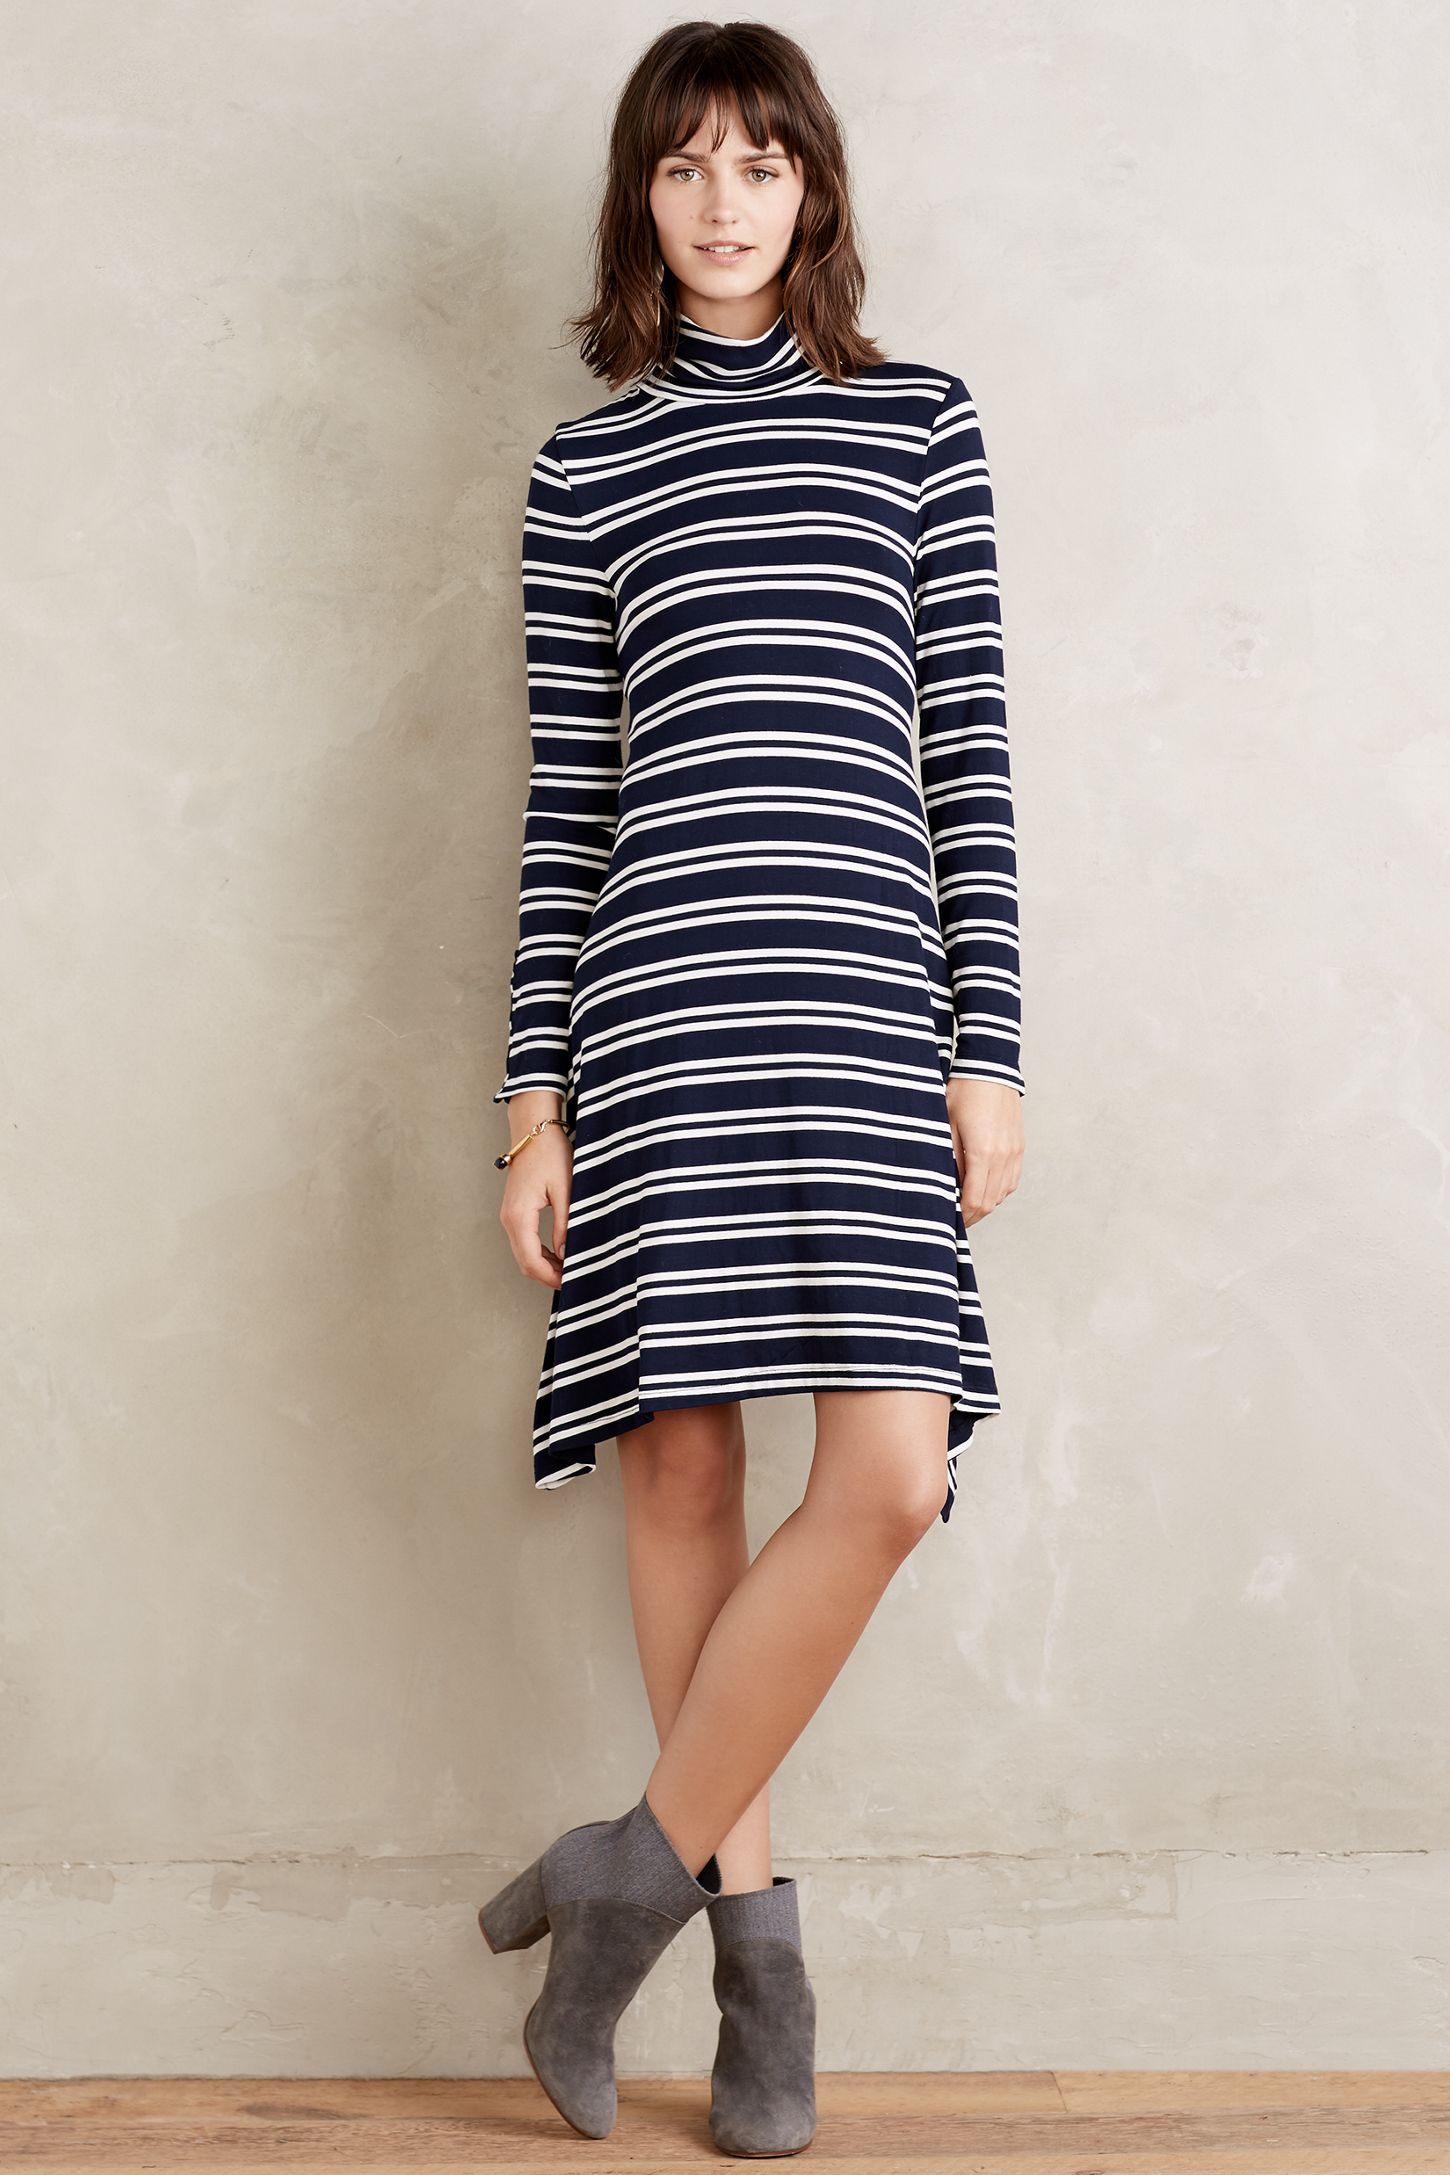 dadb61e7cc38 Turtleneck Swing Dress | Anthropologie